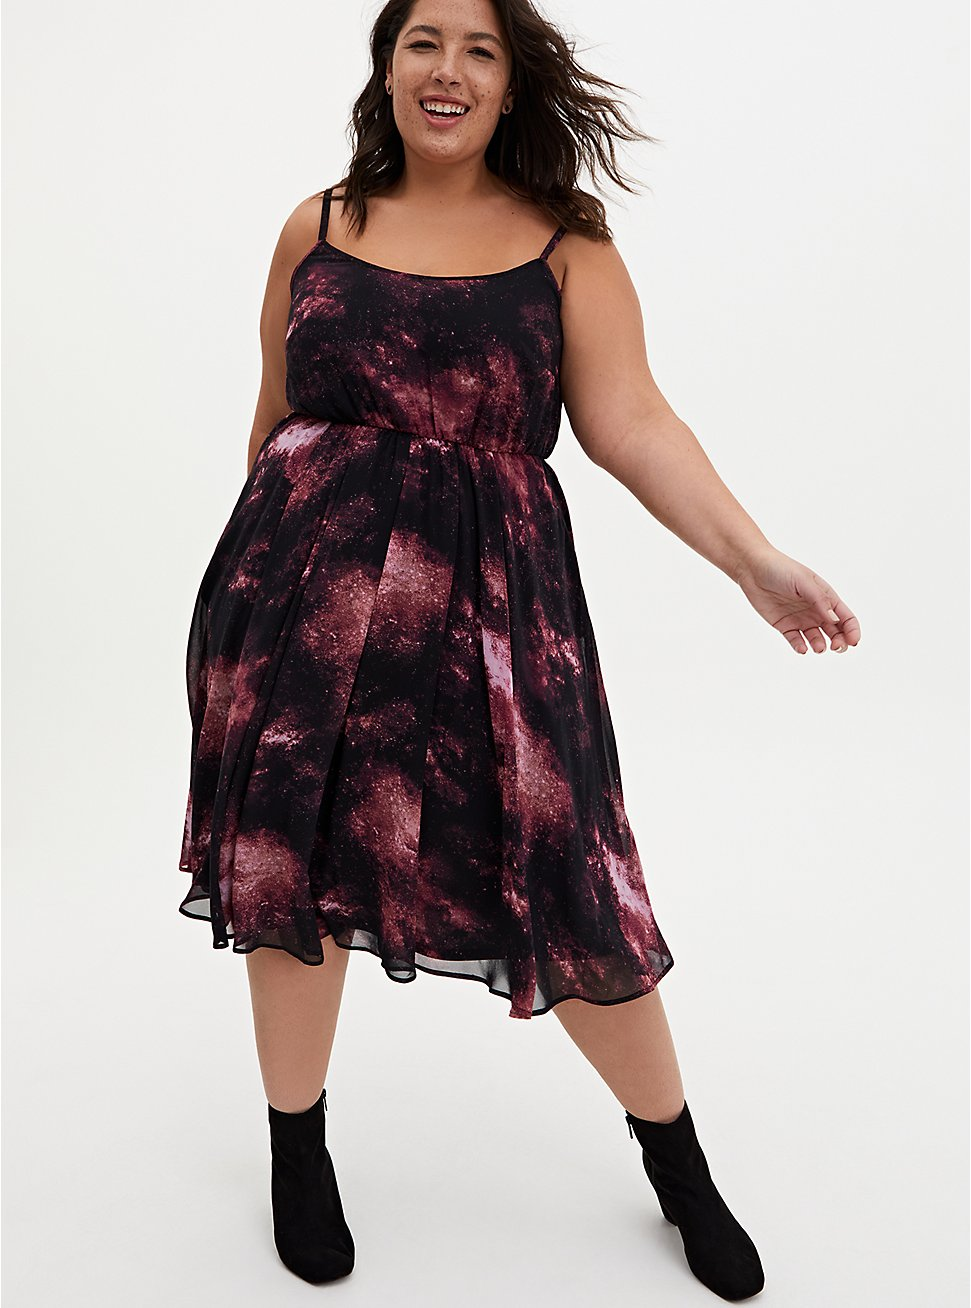 Black Galaxy Chiffon Midi Dress, GALAXY, hi-res